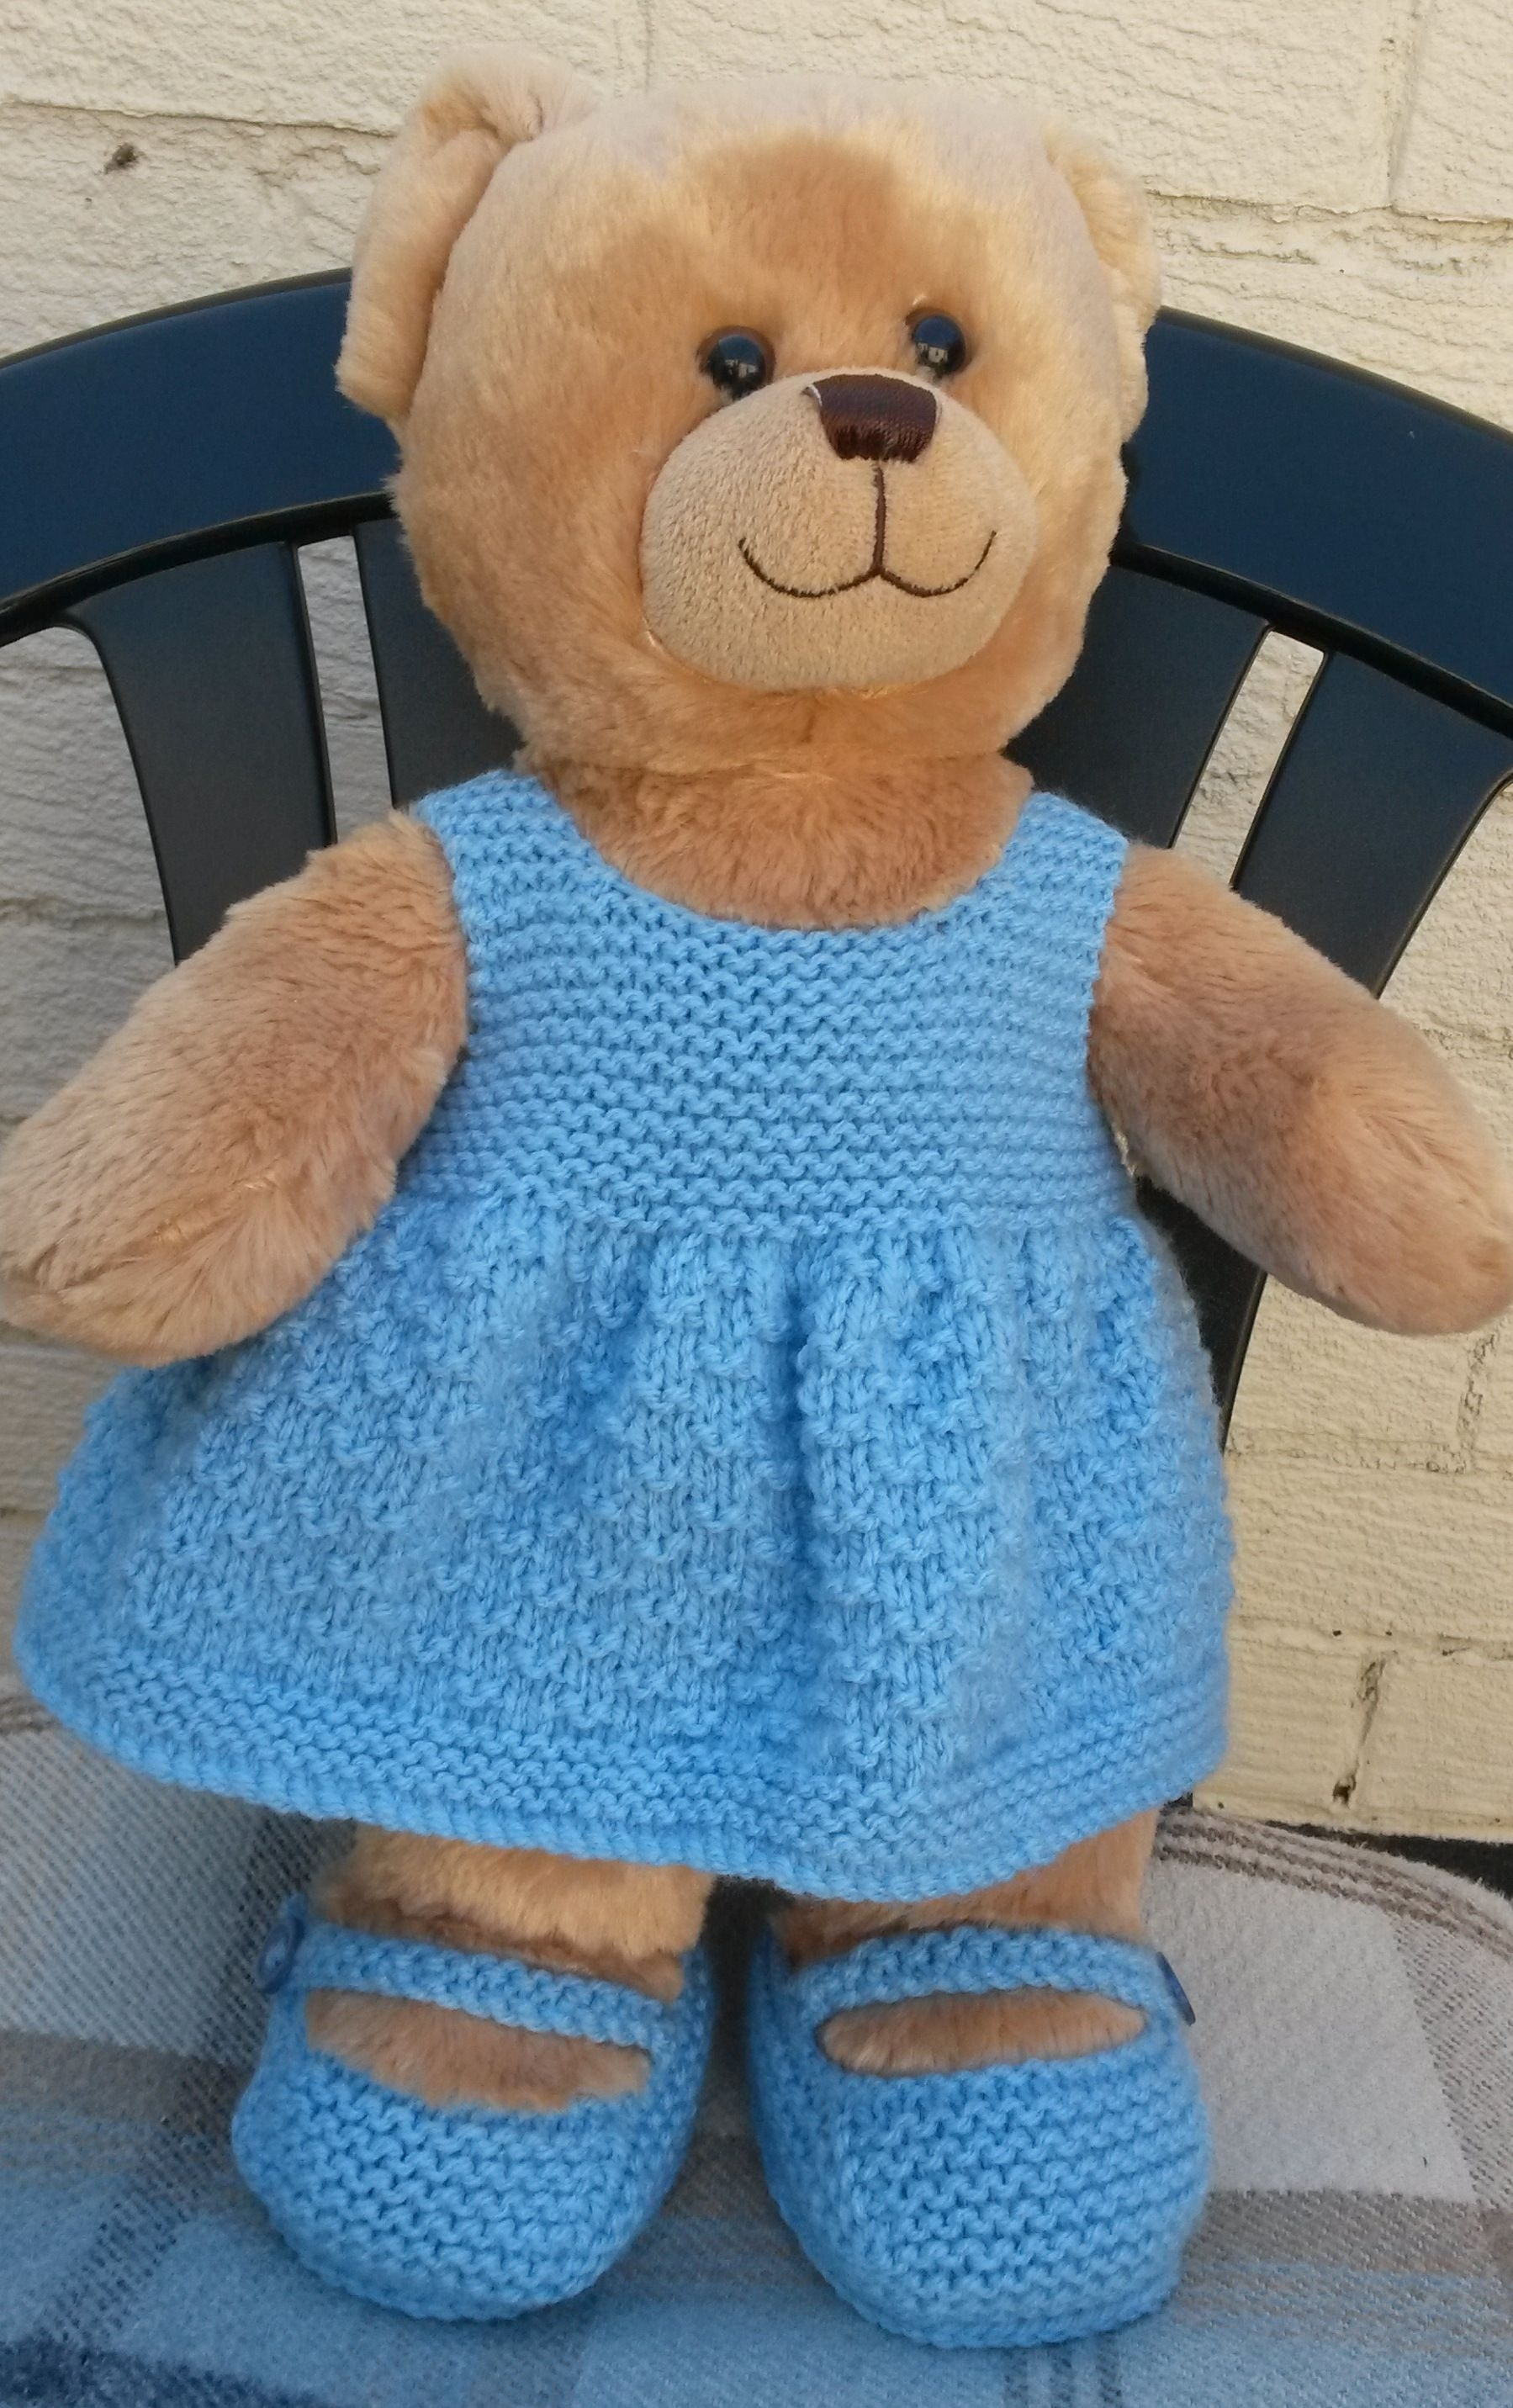 An Easy Free Pattern And Shoes Ideal For Build A Bears   Crochet - Free Printable Teddy Bear Clothes Patterns